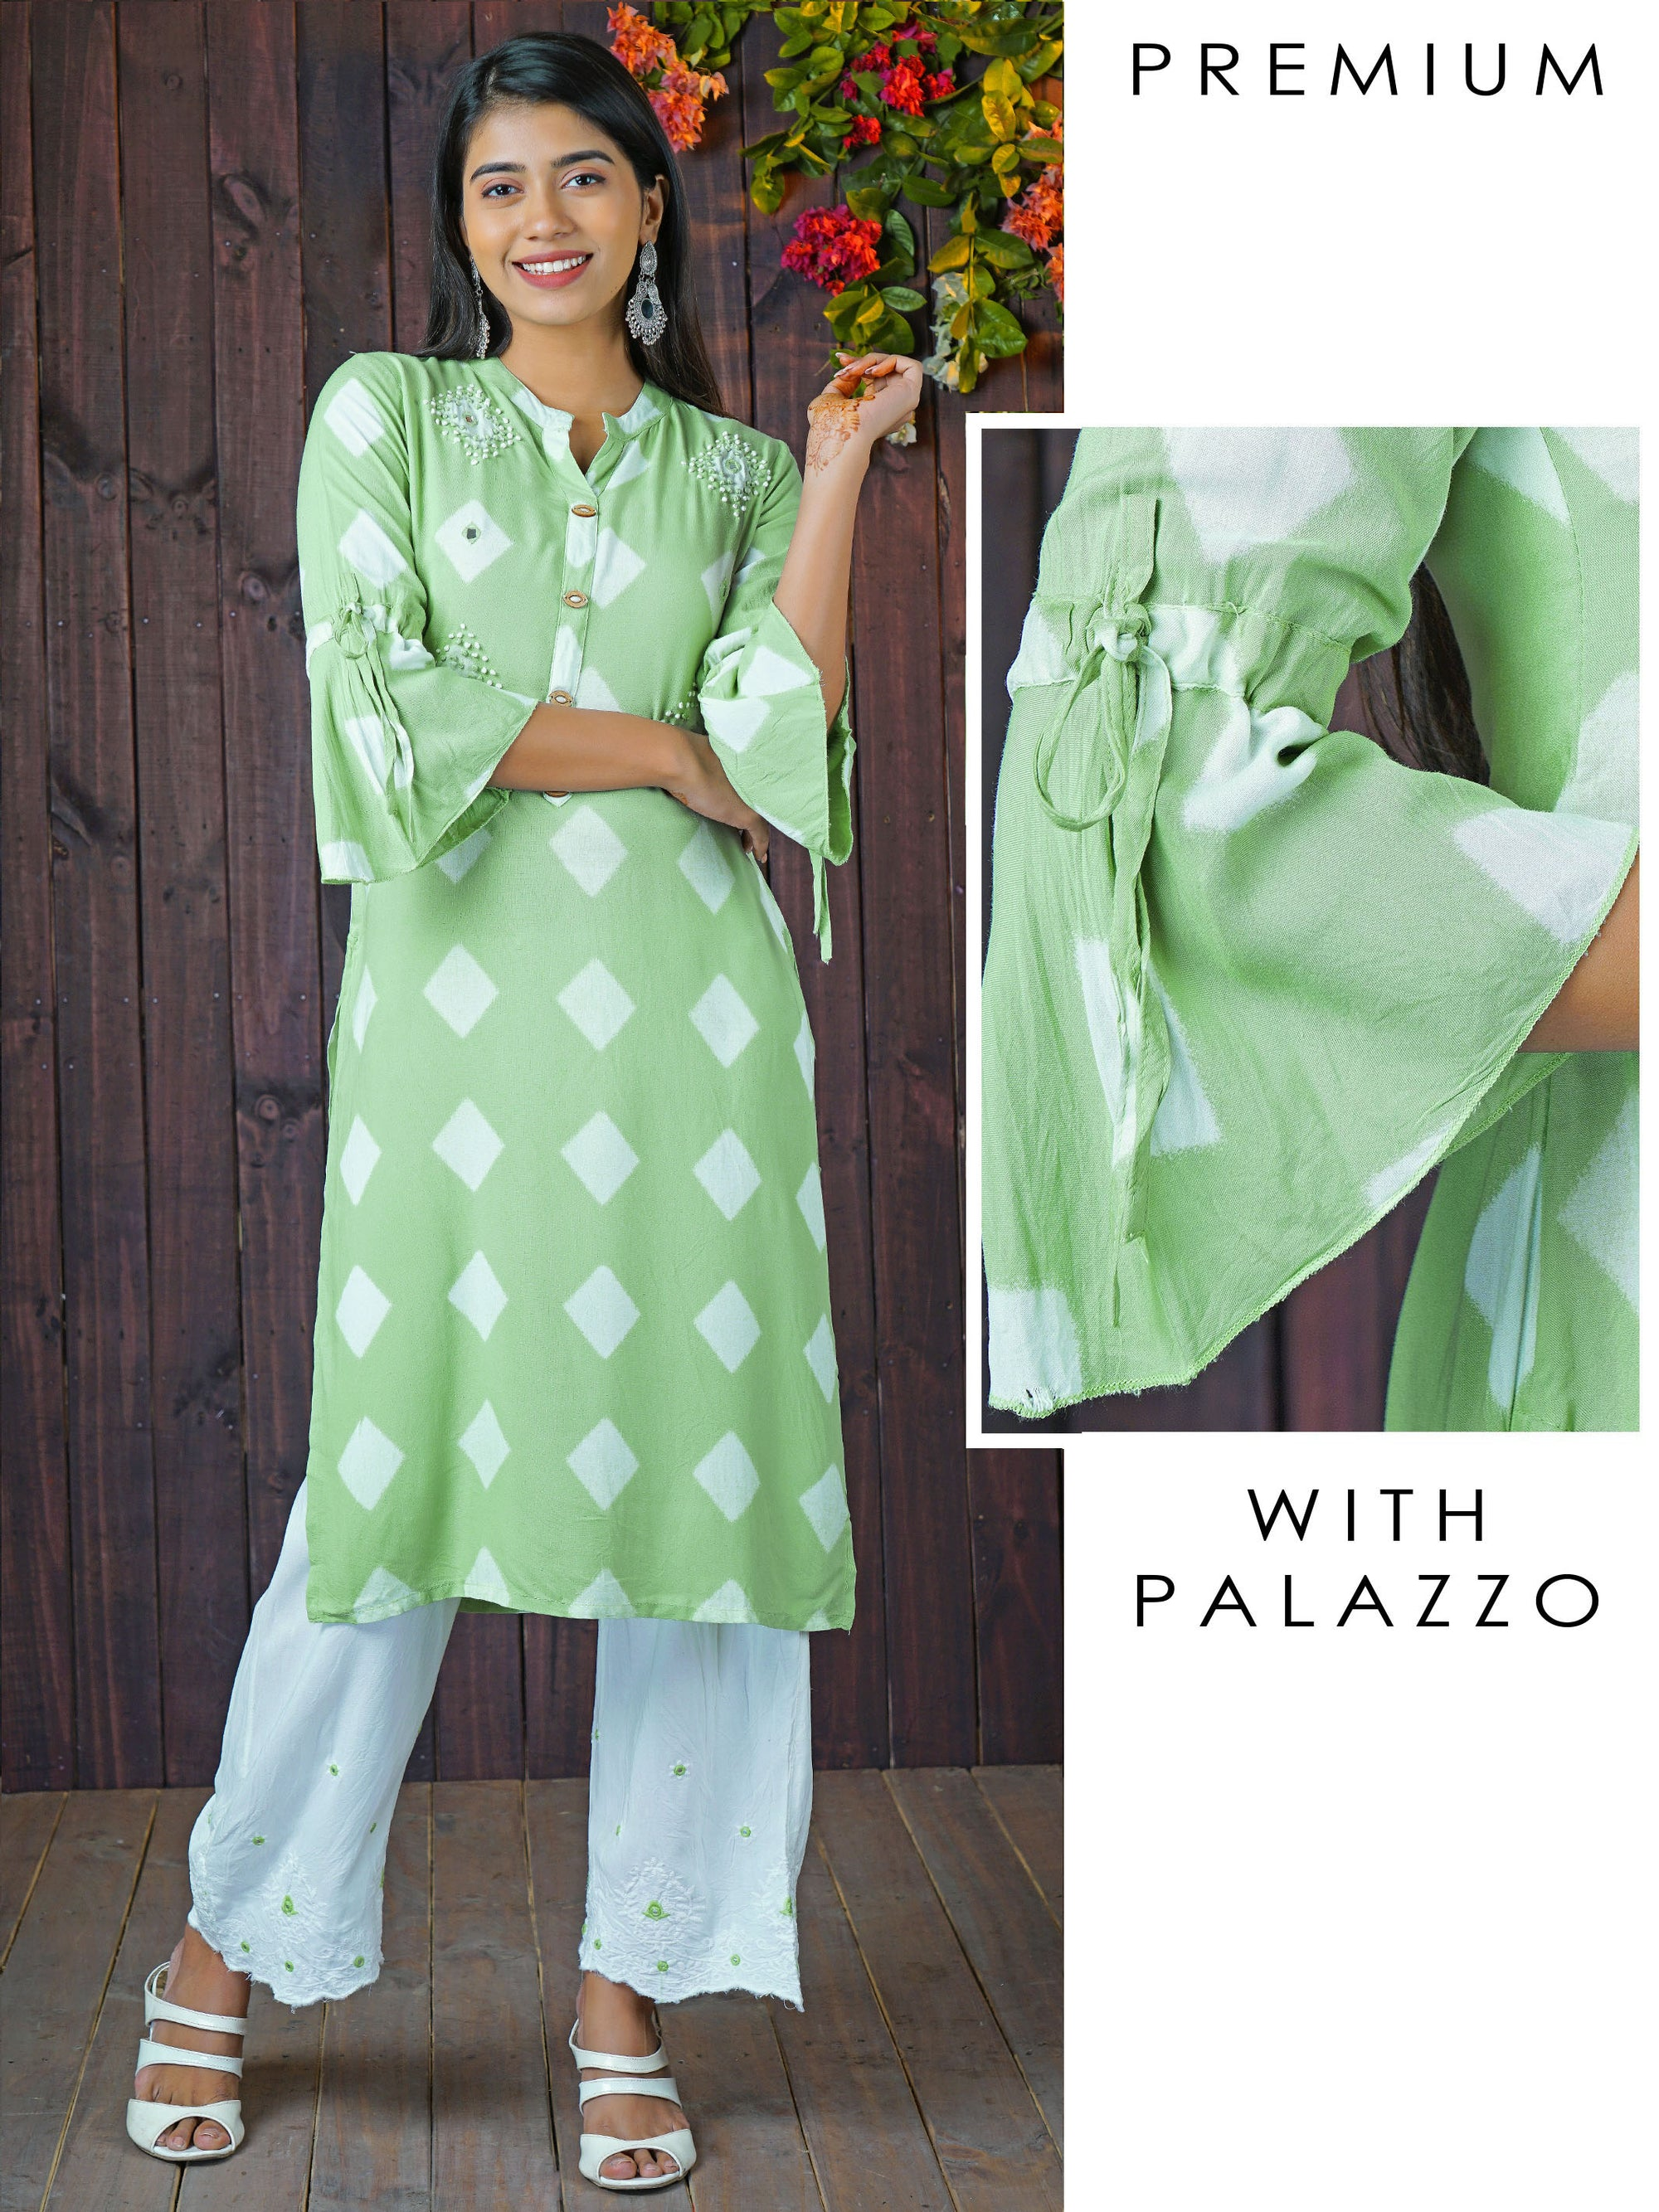 French Knot & Diamond Printed Kurti With Scallop Embroidered Pant Set - Mint Green